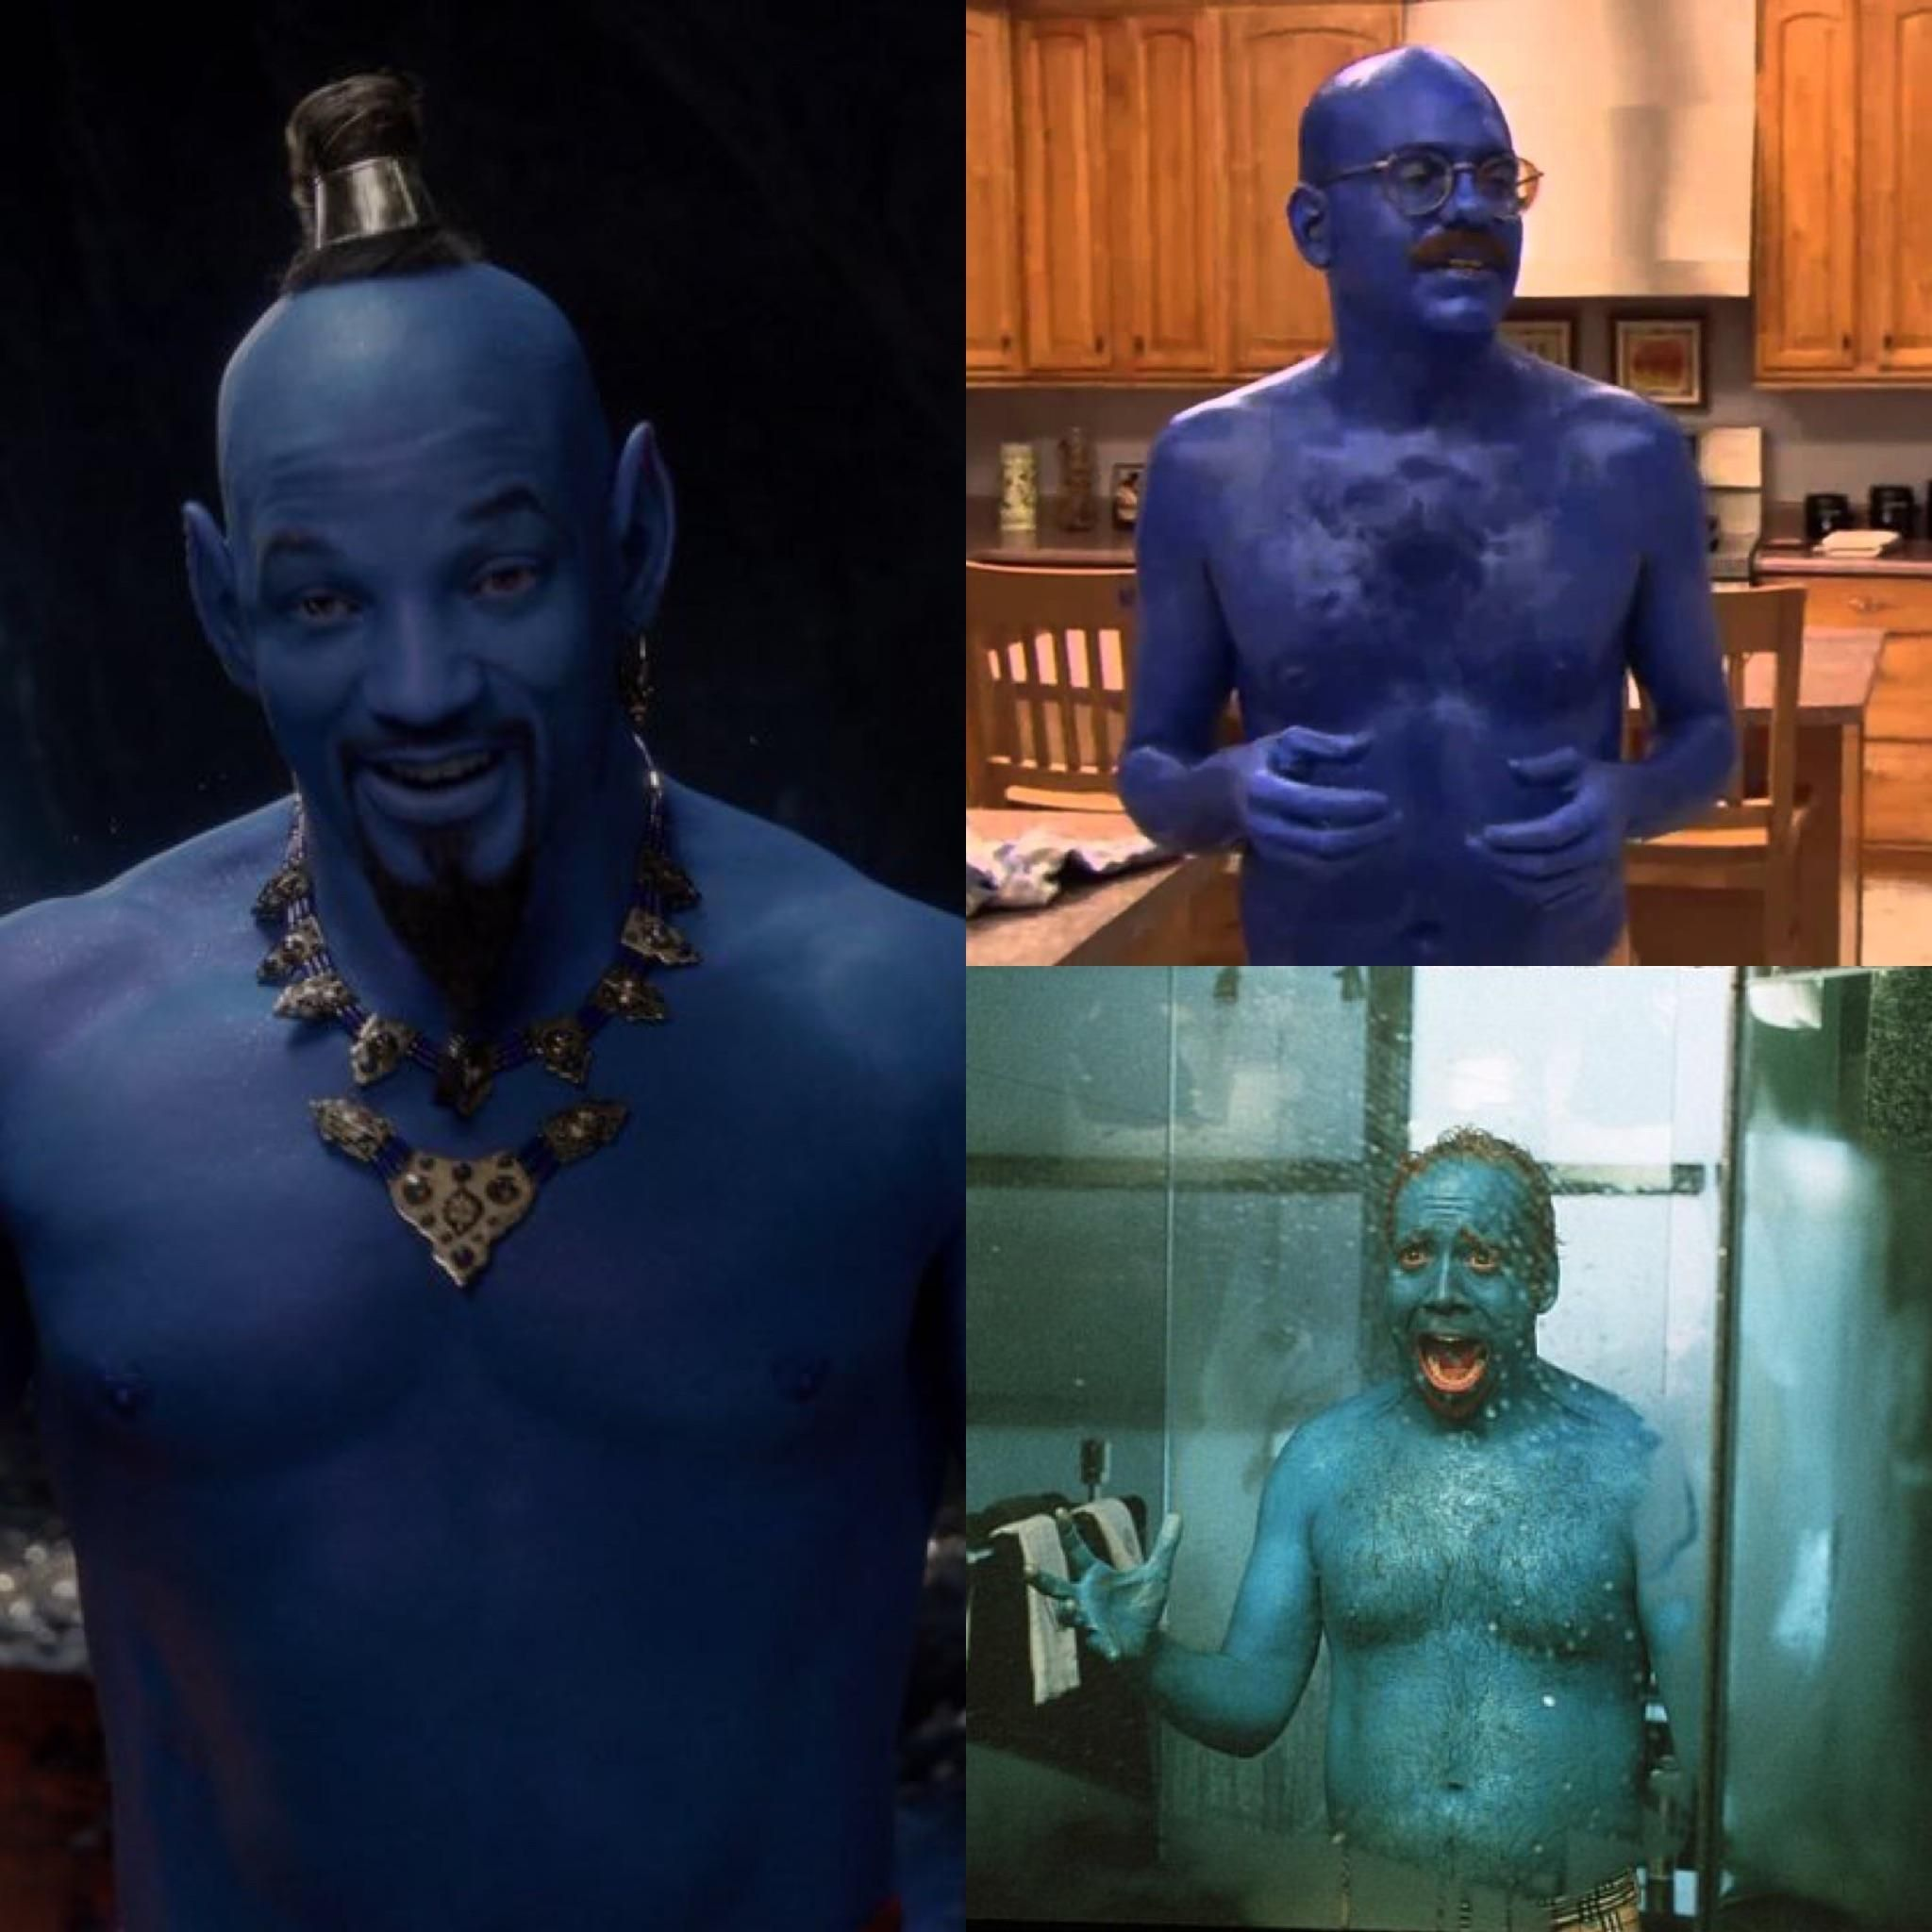 So they finally revealed the look of Will Smith's genie.